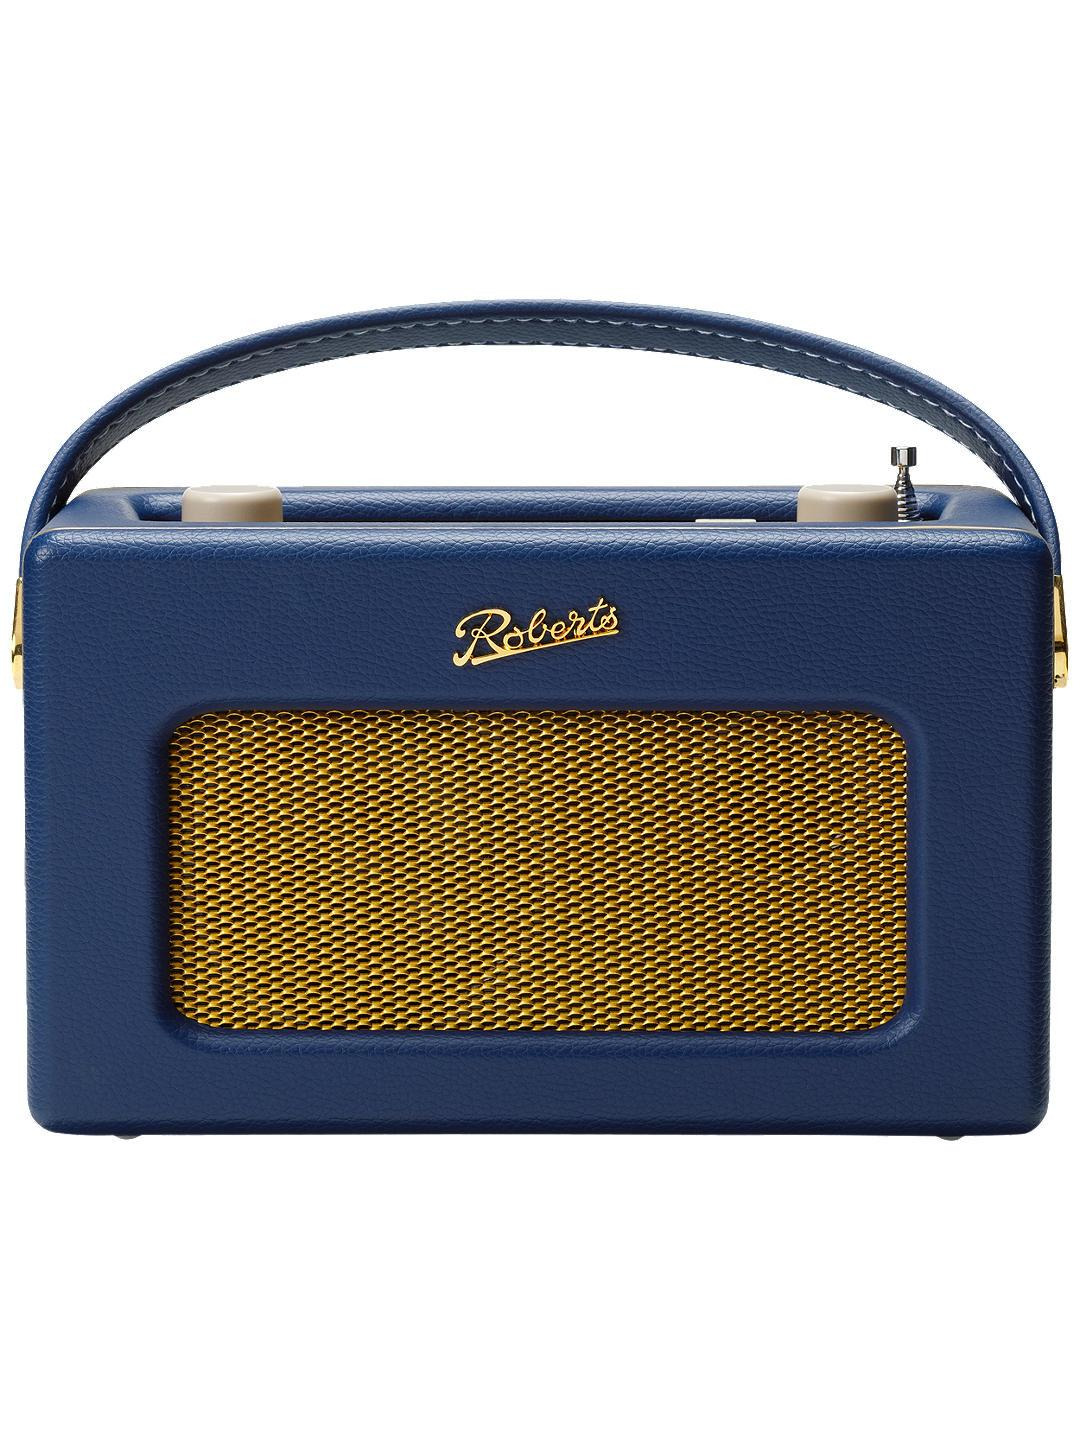 ROBERTS REVIVAL iSTREAM 3 SMART RADIO MIDNIGHT BLUE